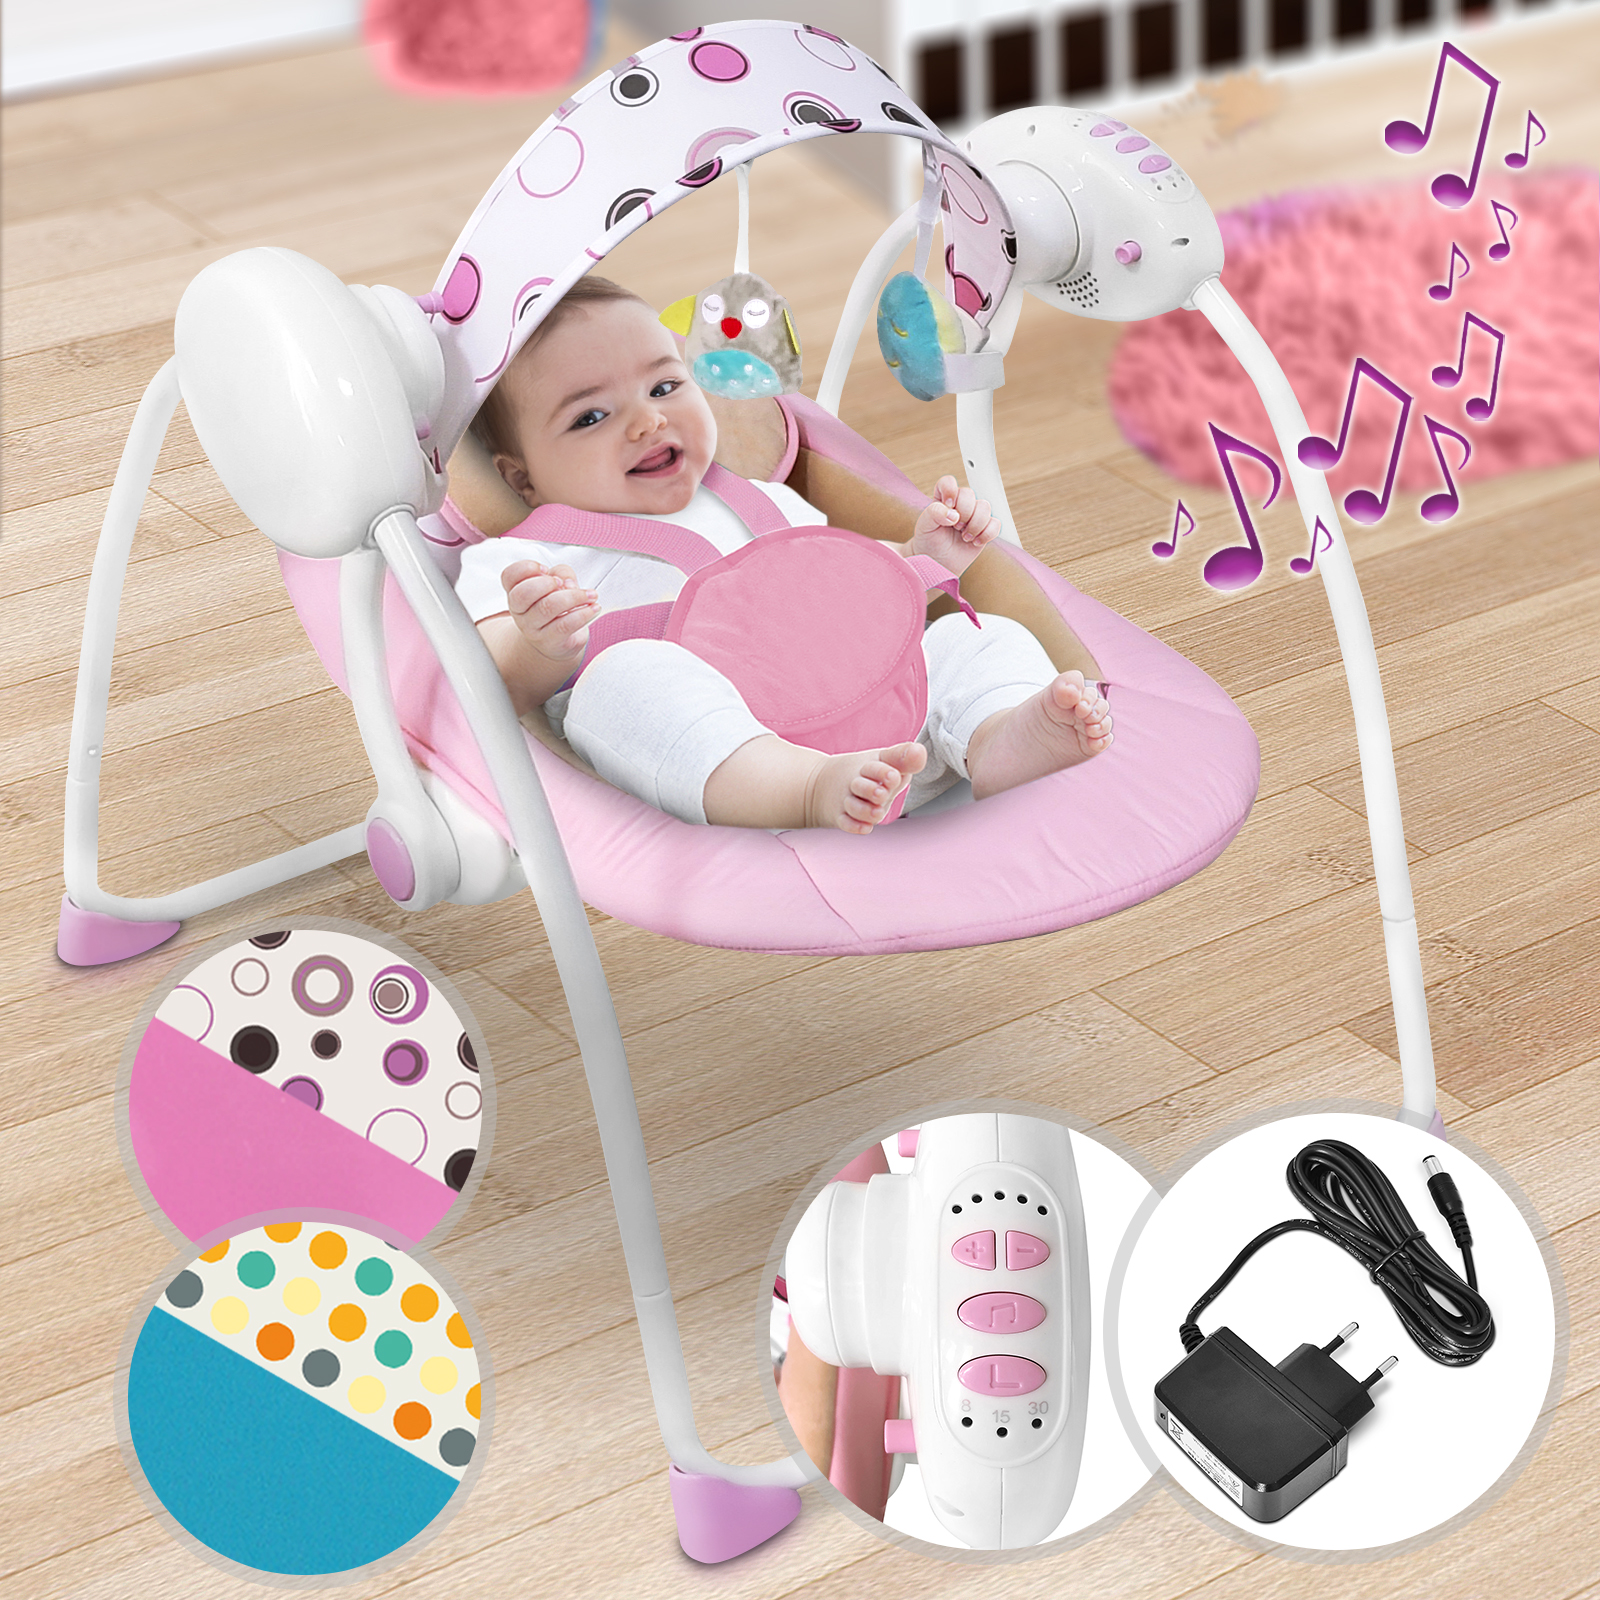 Baby-Bouncer-Music-MP3-Swing-Rocking-Chair-Infant-Entertainment-Toys-U12-Months thumbnail 20